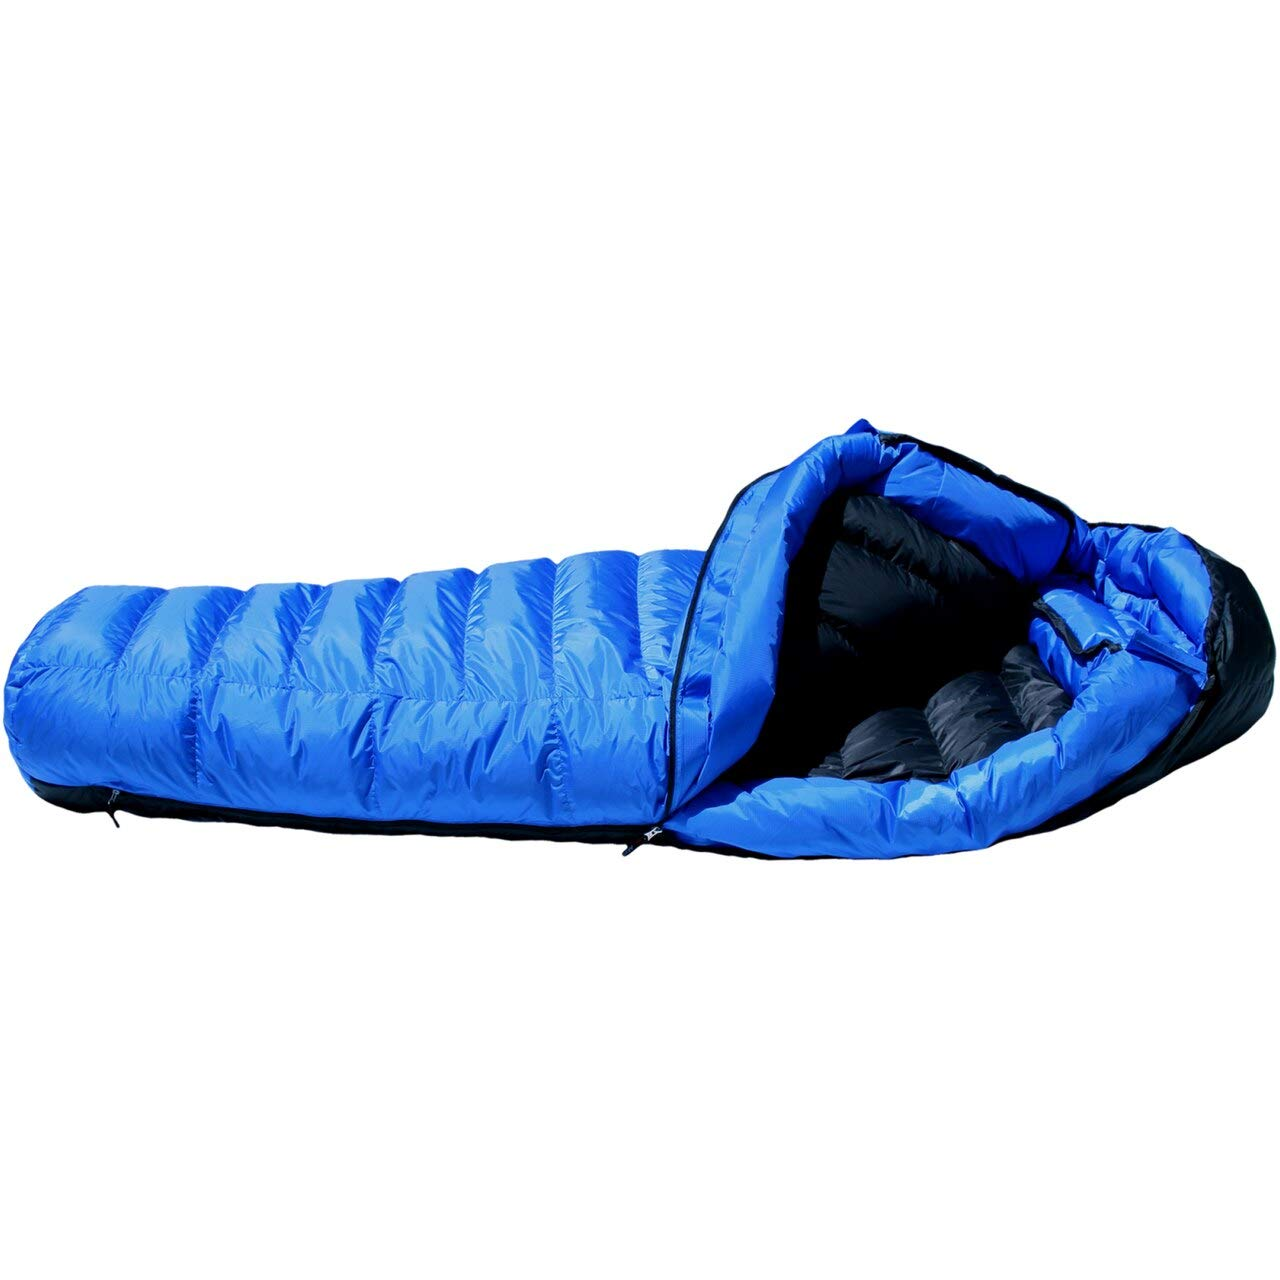 6ft Western Mountaineering Puma Gore WS Sleeping Bag: -25 Degree Down